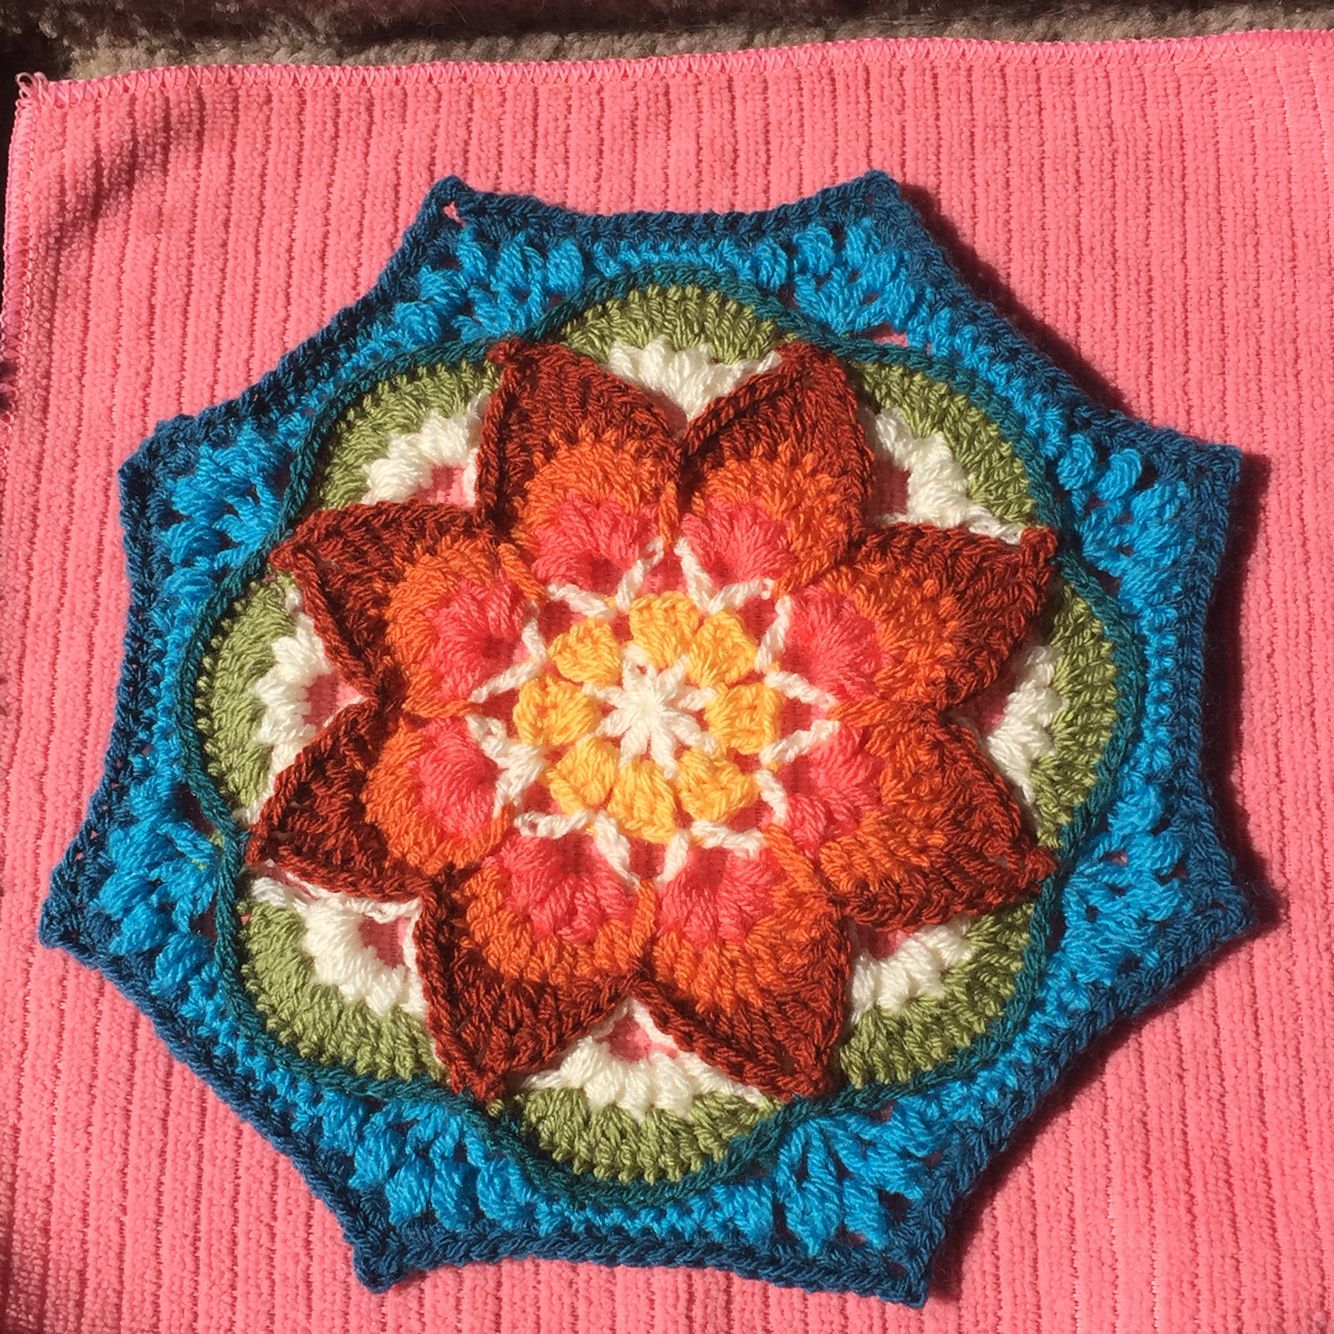 Lotus moon cal by polly plum cal crochet a longs pinterest lotus moon cal by polly plum appliquelotusmoongranny squaresfree pattern plumcirclescrochet afghansflower izmirmasajfo Gallery